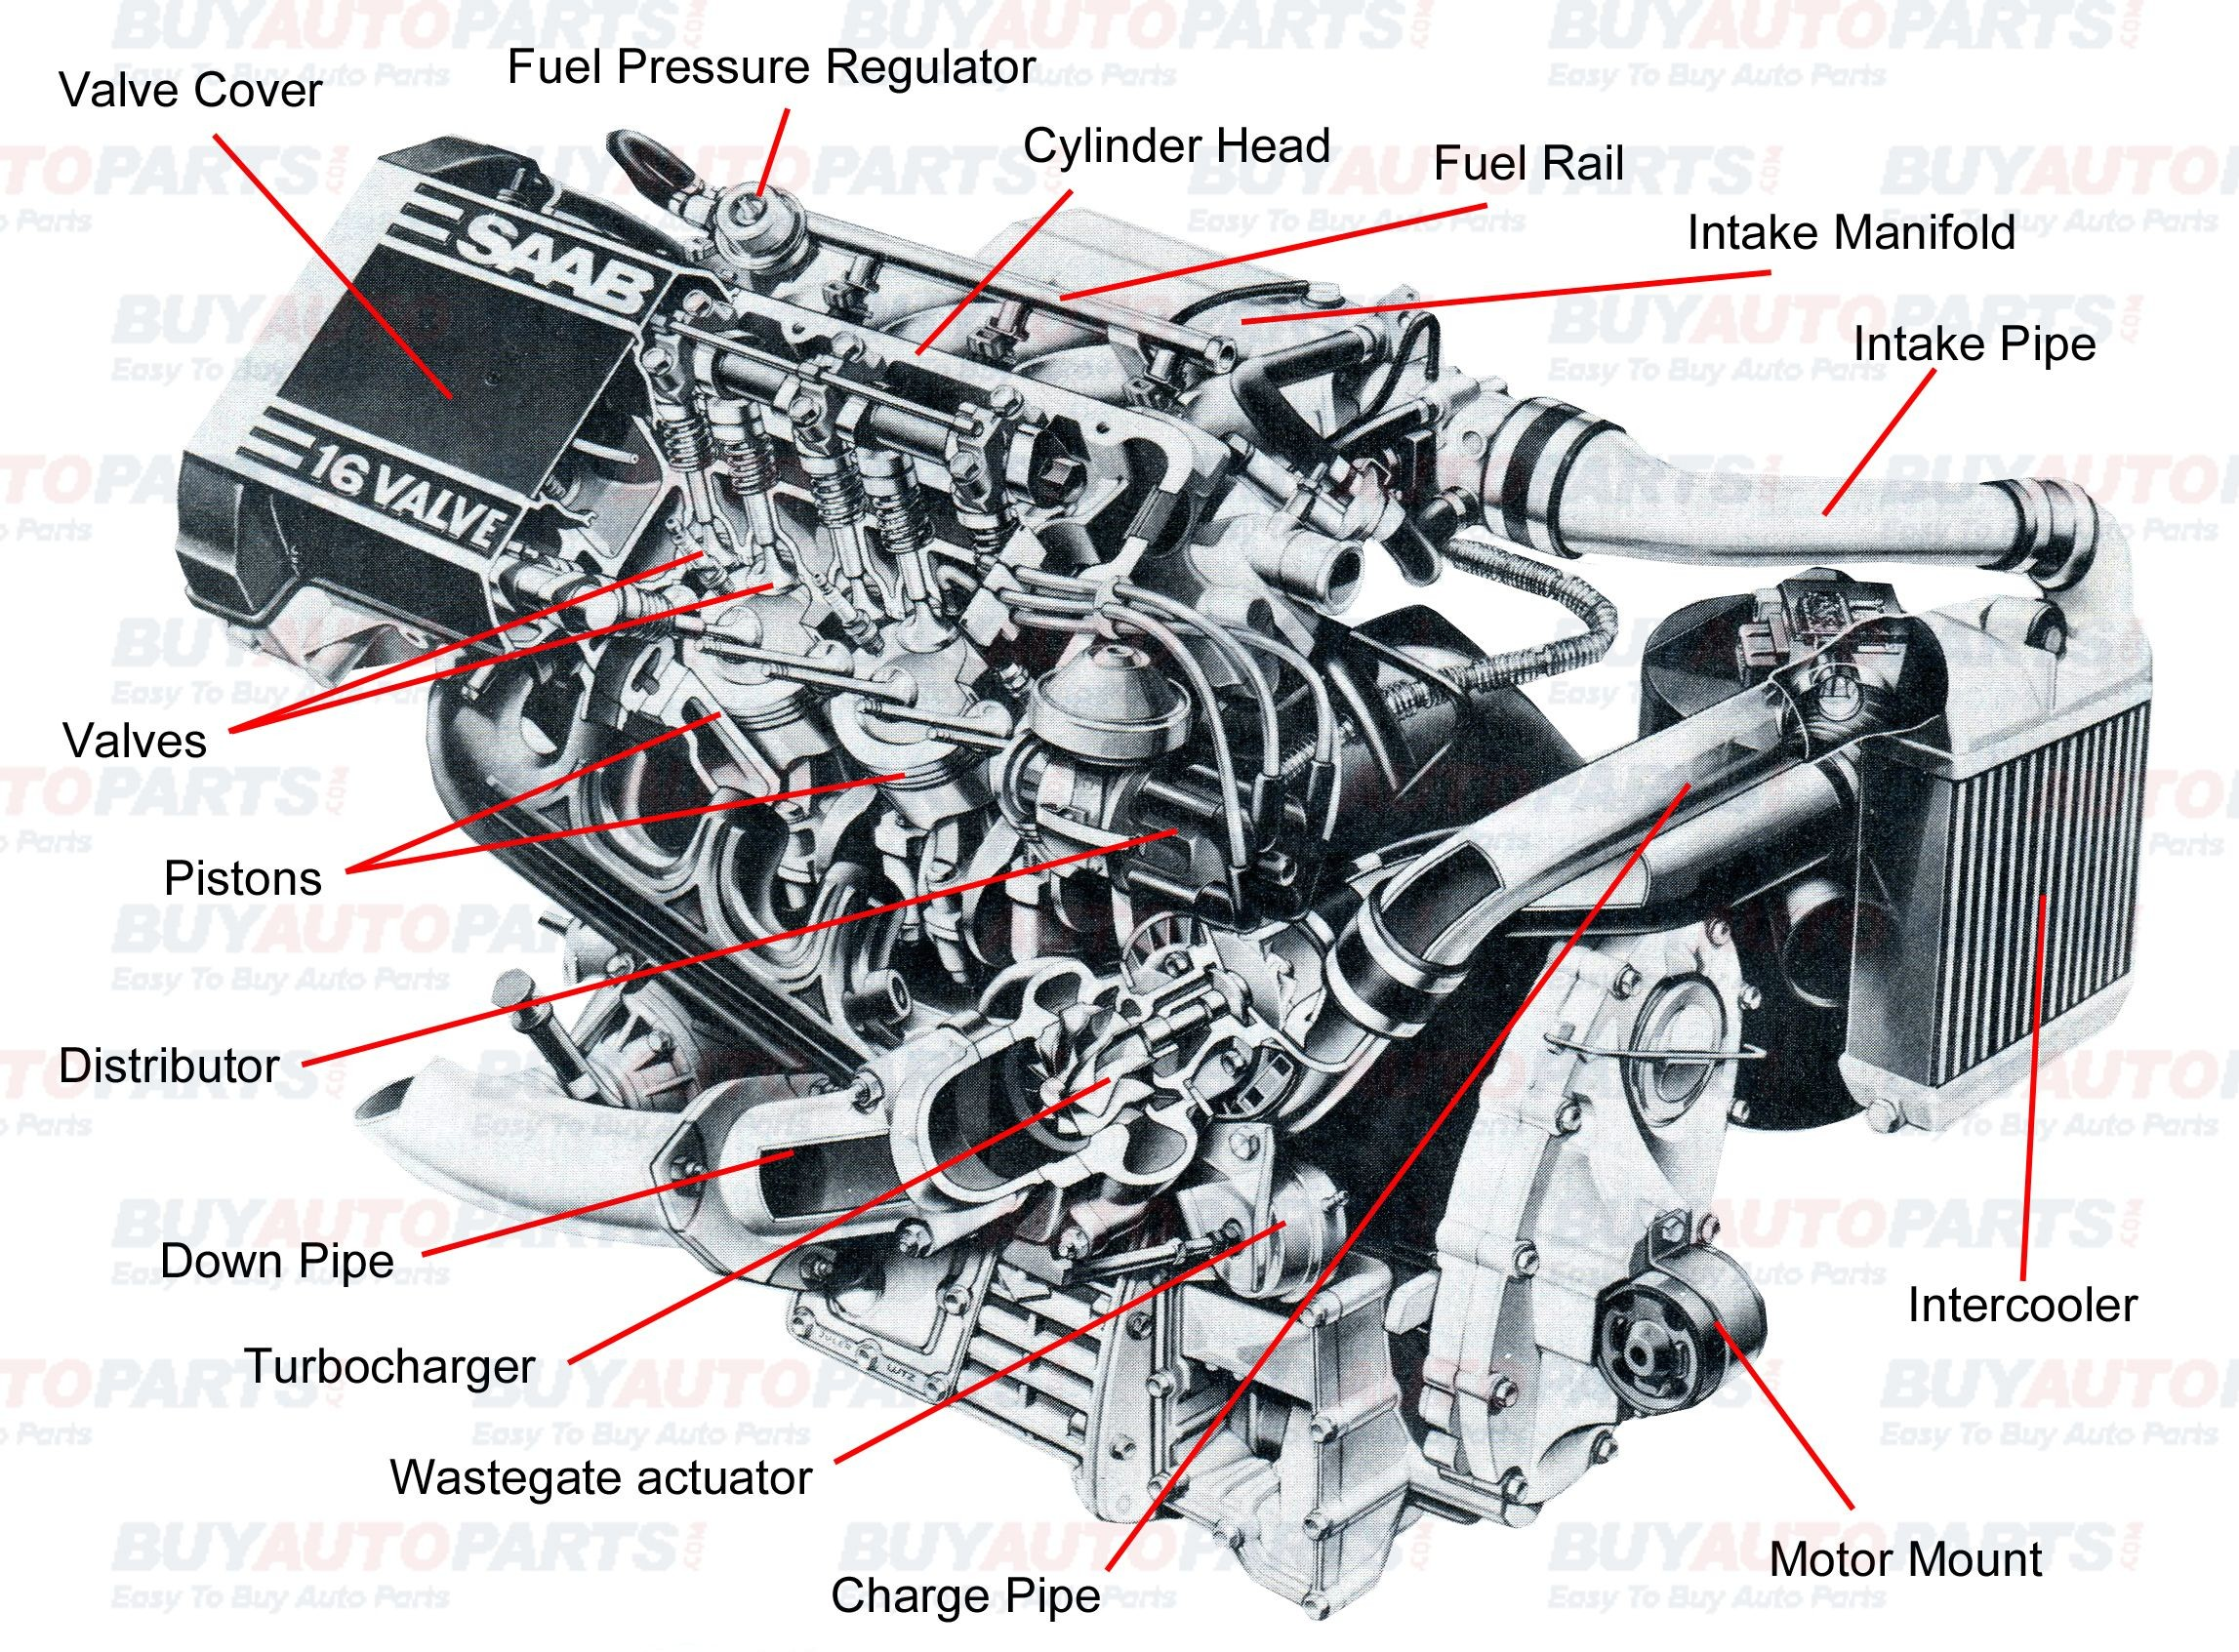 Engine Cooling Diagram All Internal Bustion Engines Have the Same Basic  Ponents the Of Engine Cooling